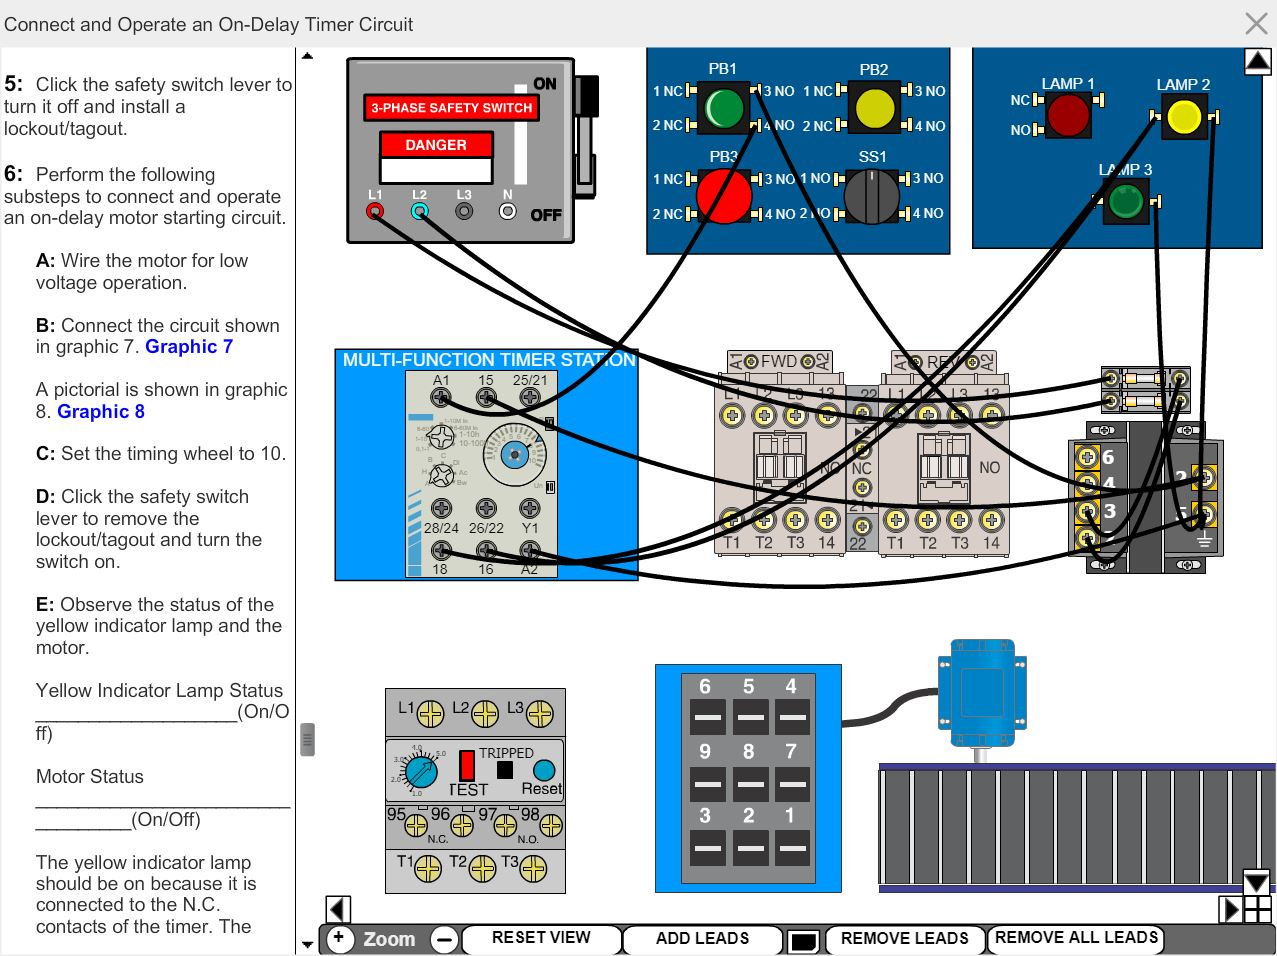 Electrical Motor Control eLearning Course Multimedia Screen ... on